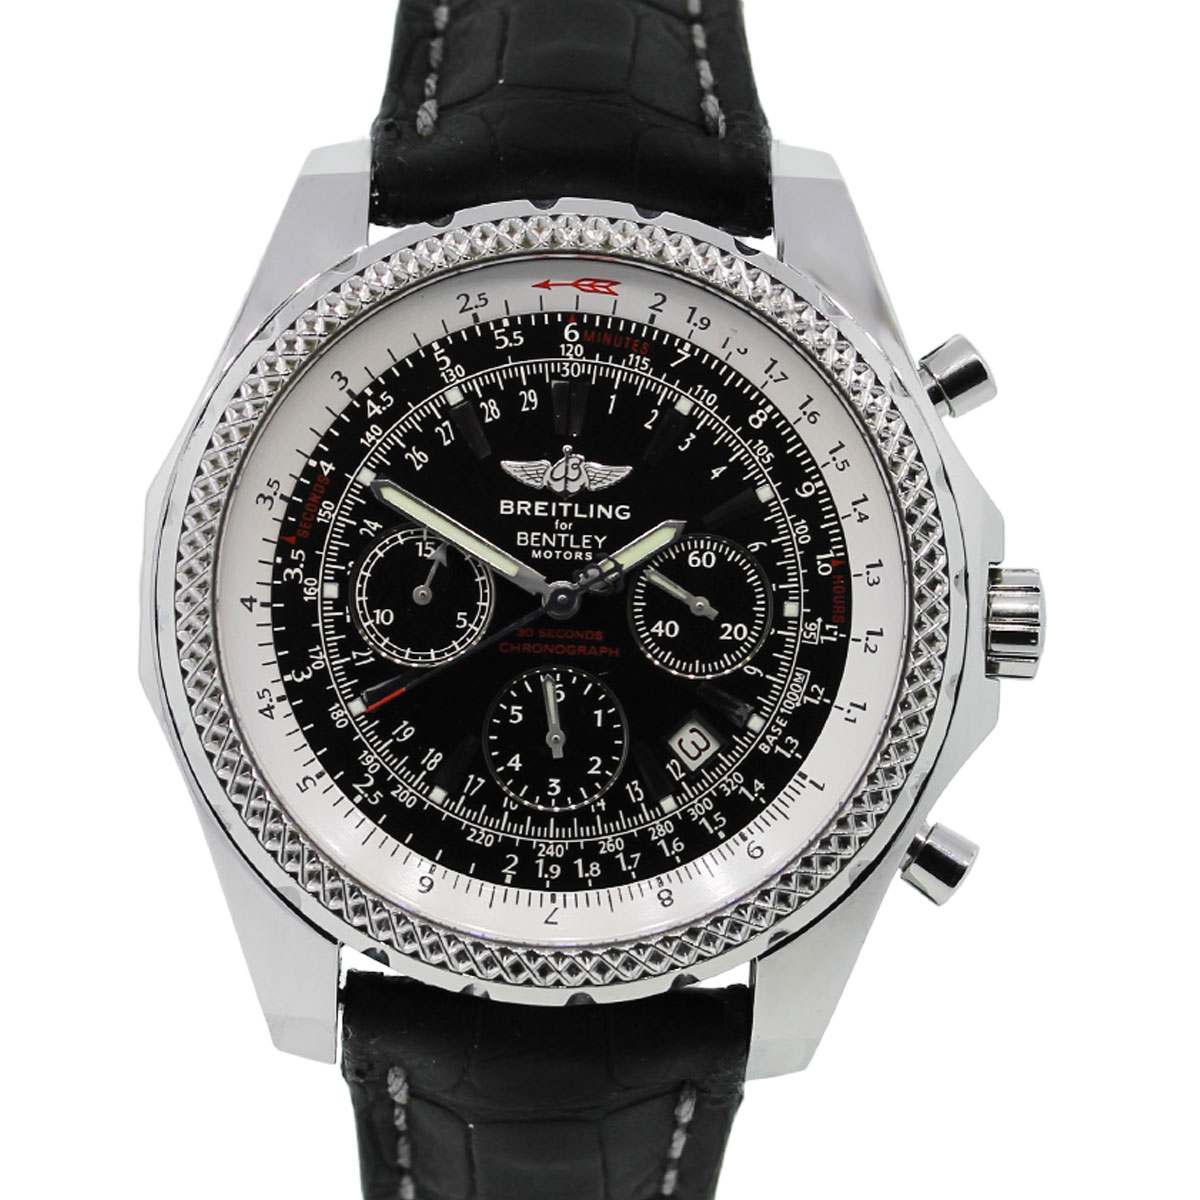 Breitling For Bentley A25962 Black Dial Special Edition Watch